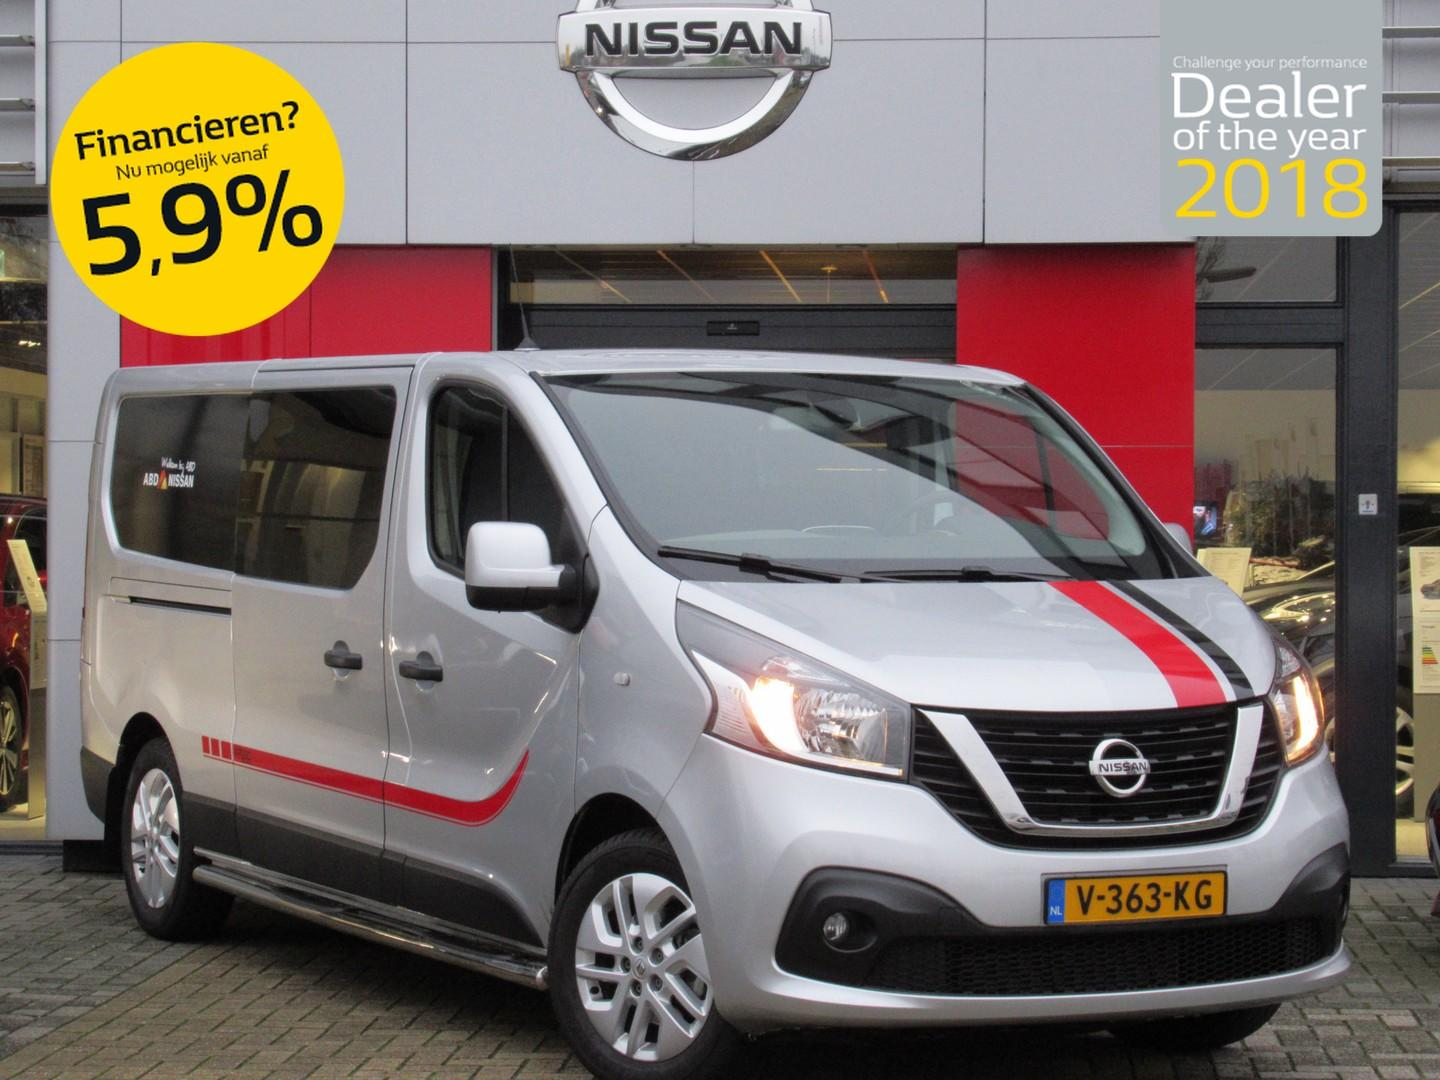 Renault Trafic Dci 120pk l2h1 edition 300 dubbele cabine nu 20.945,- inclusief exclusieve styling!!!